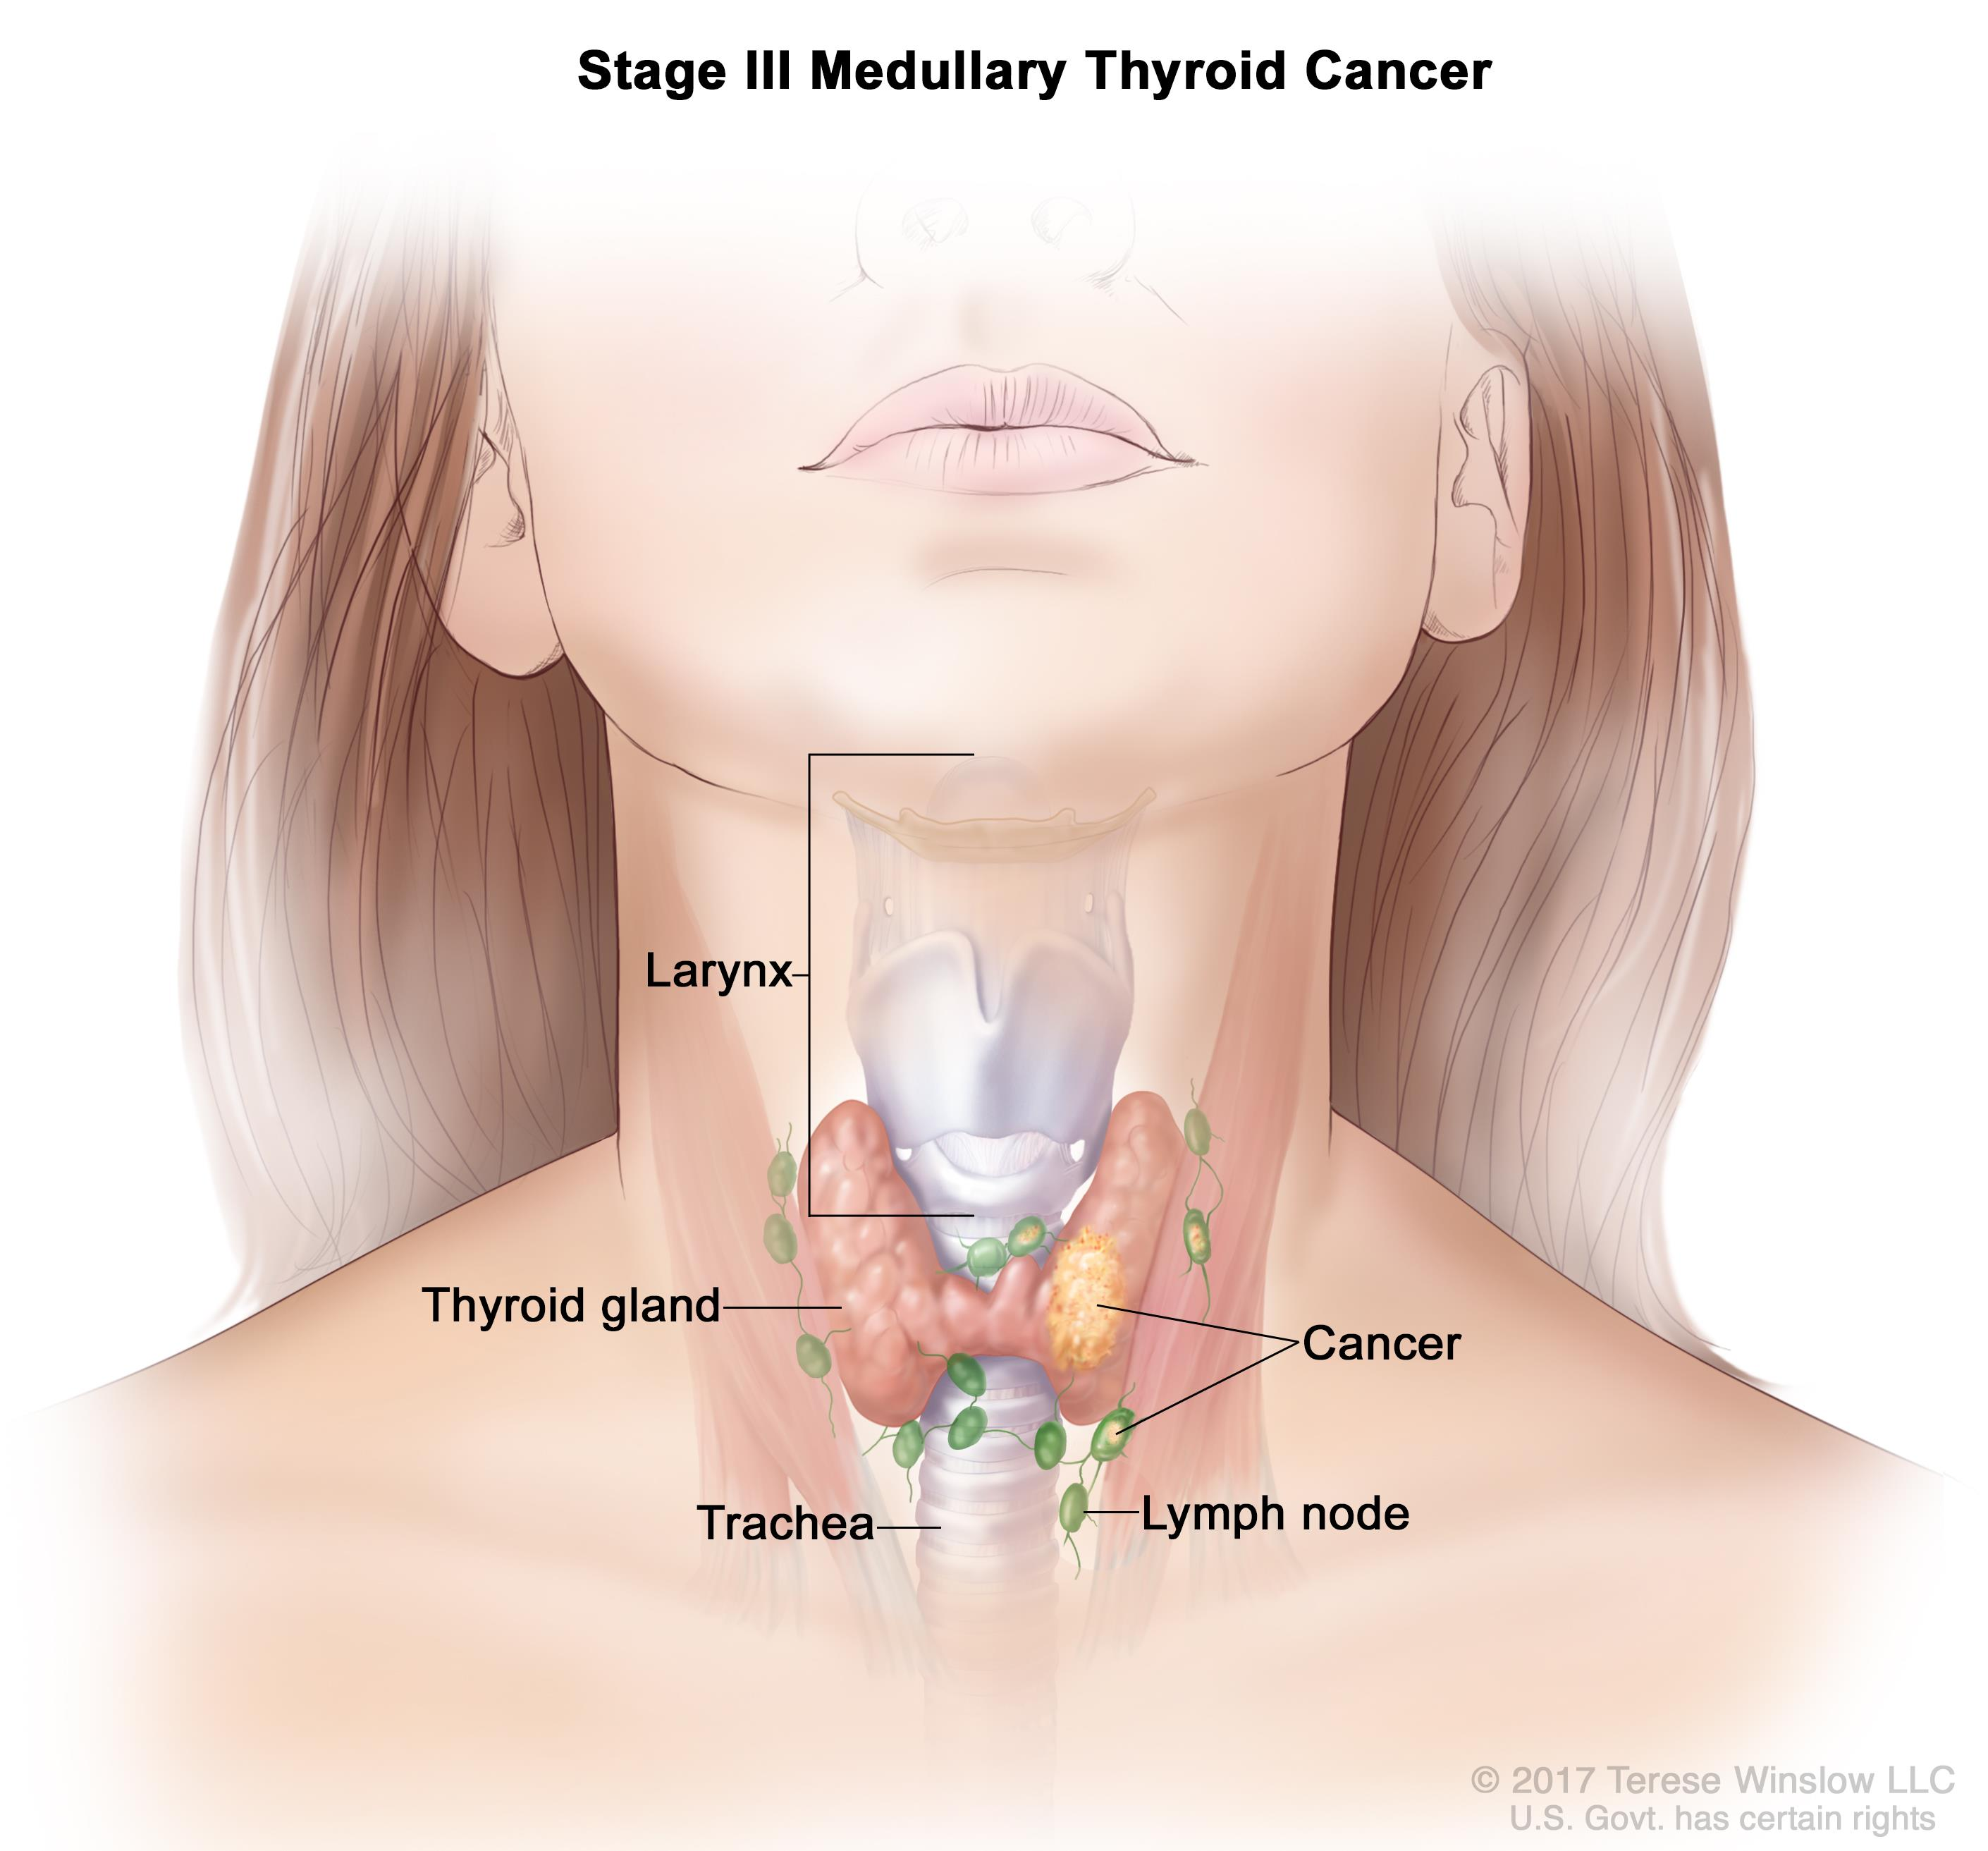 Stage III medullary thyroid cancer; drawing shows cancer that has spread to tissues just outside the thyroid gland and to lymph nodes near the trachea and larynx.